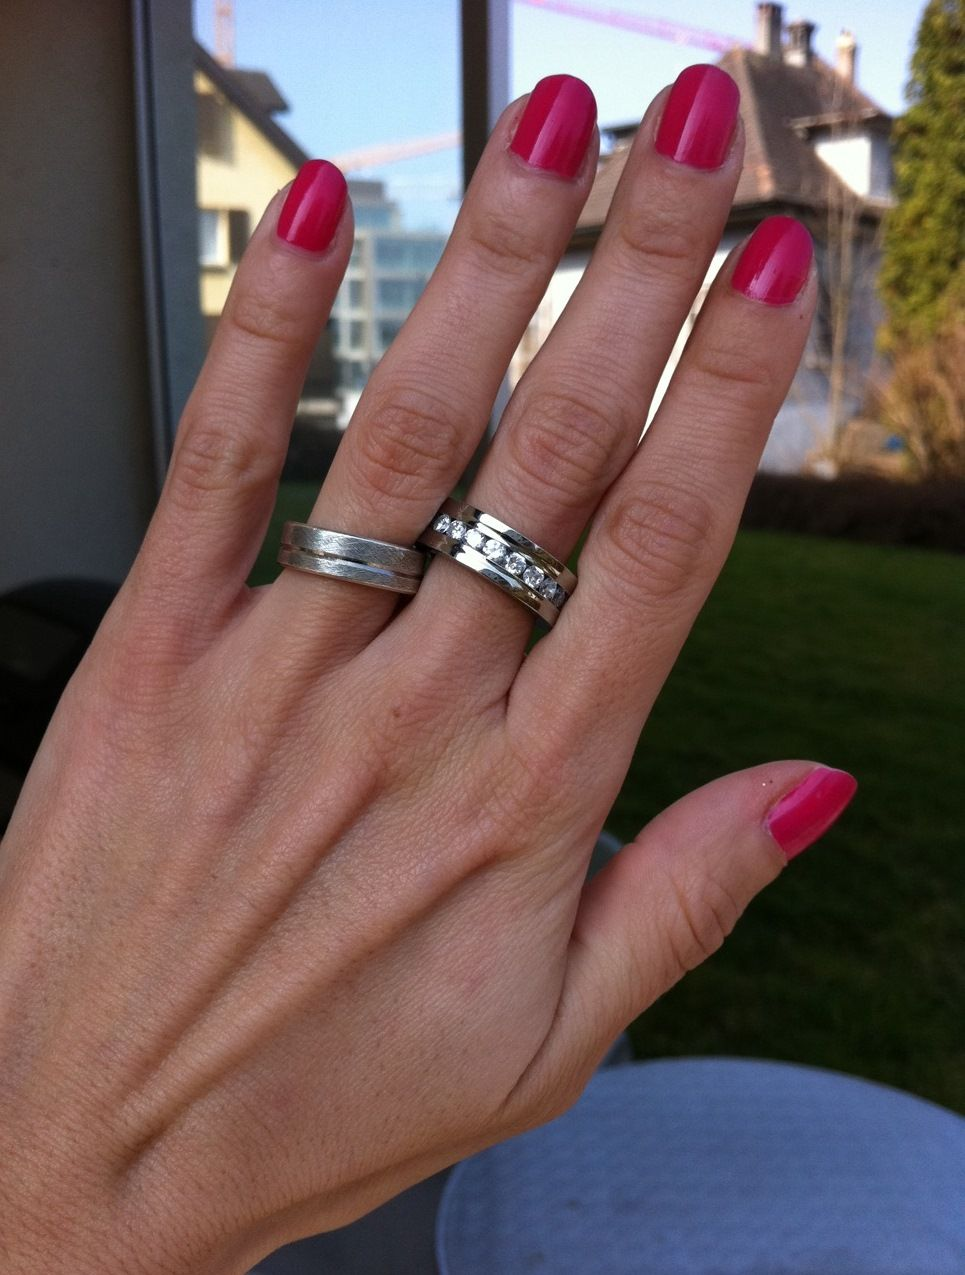 Saturnus-ring (middle-finger) and Chanel Rose Exuberant nail polish. Nice combo? :)